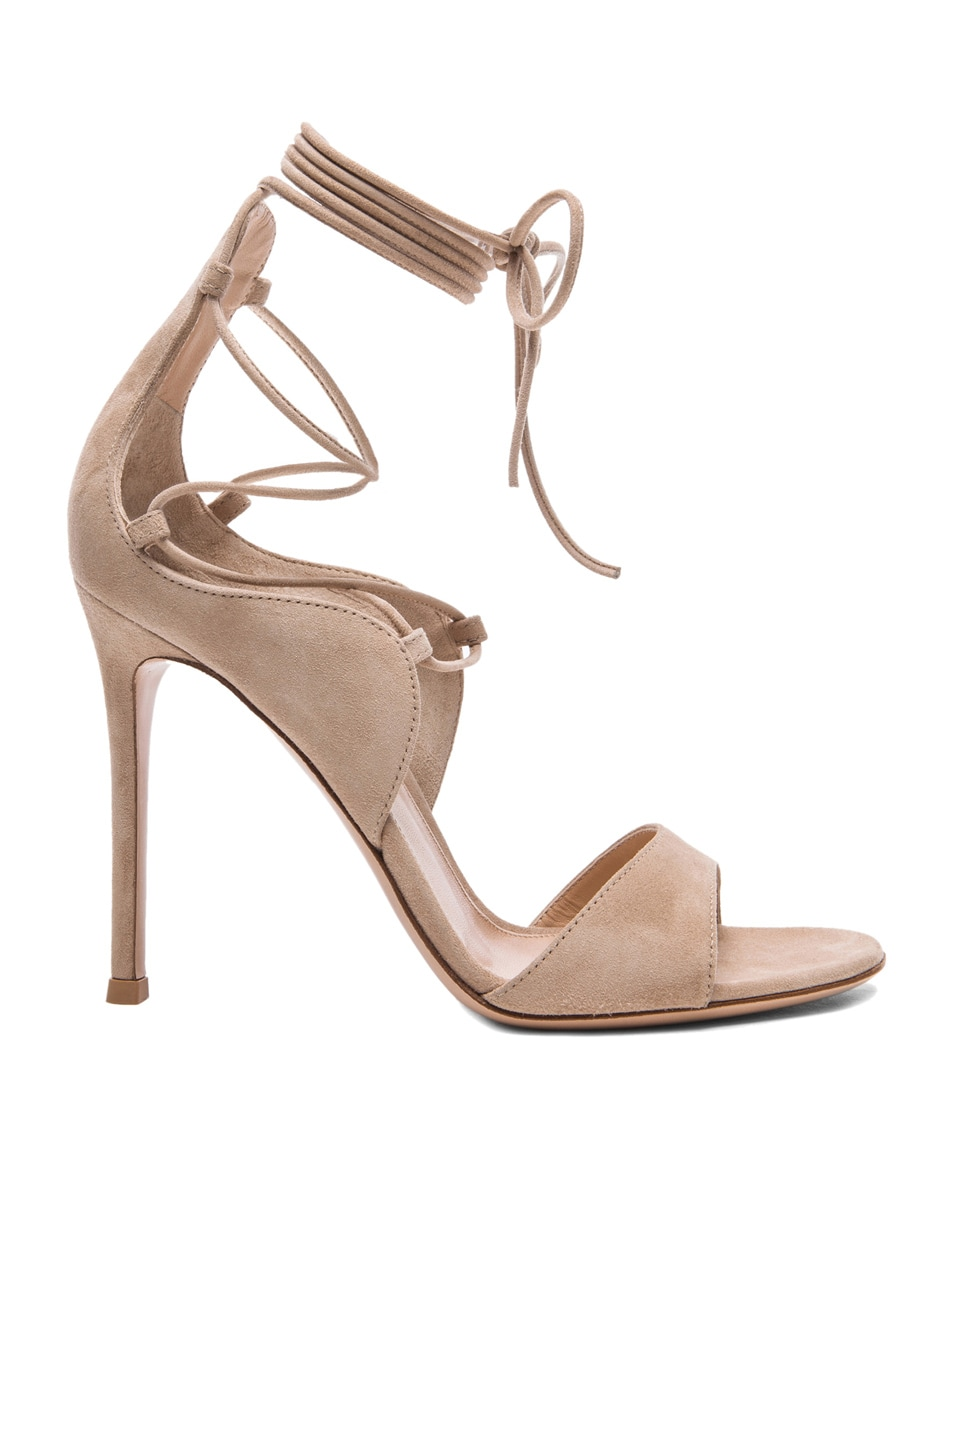 Image 1 of Gianvito Rossi Lace Up Heels in Rope Suede